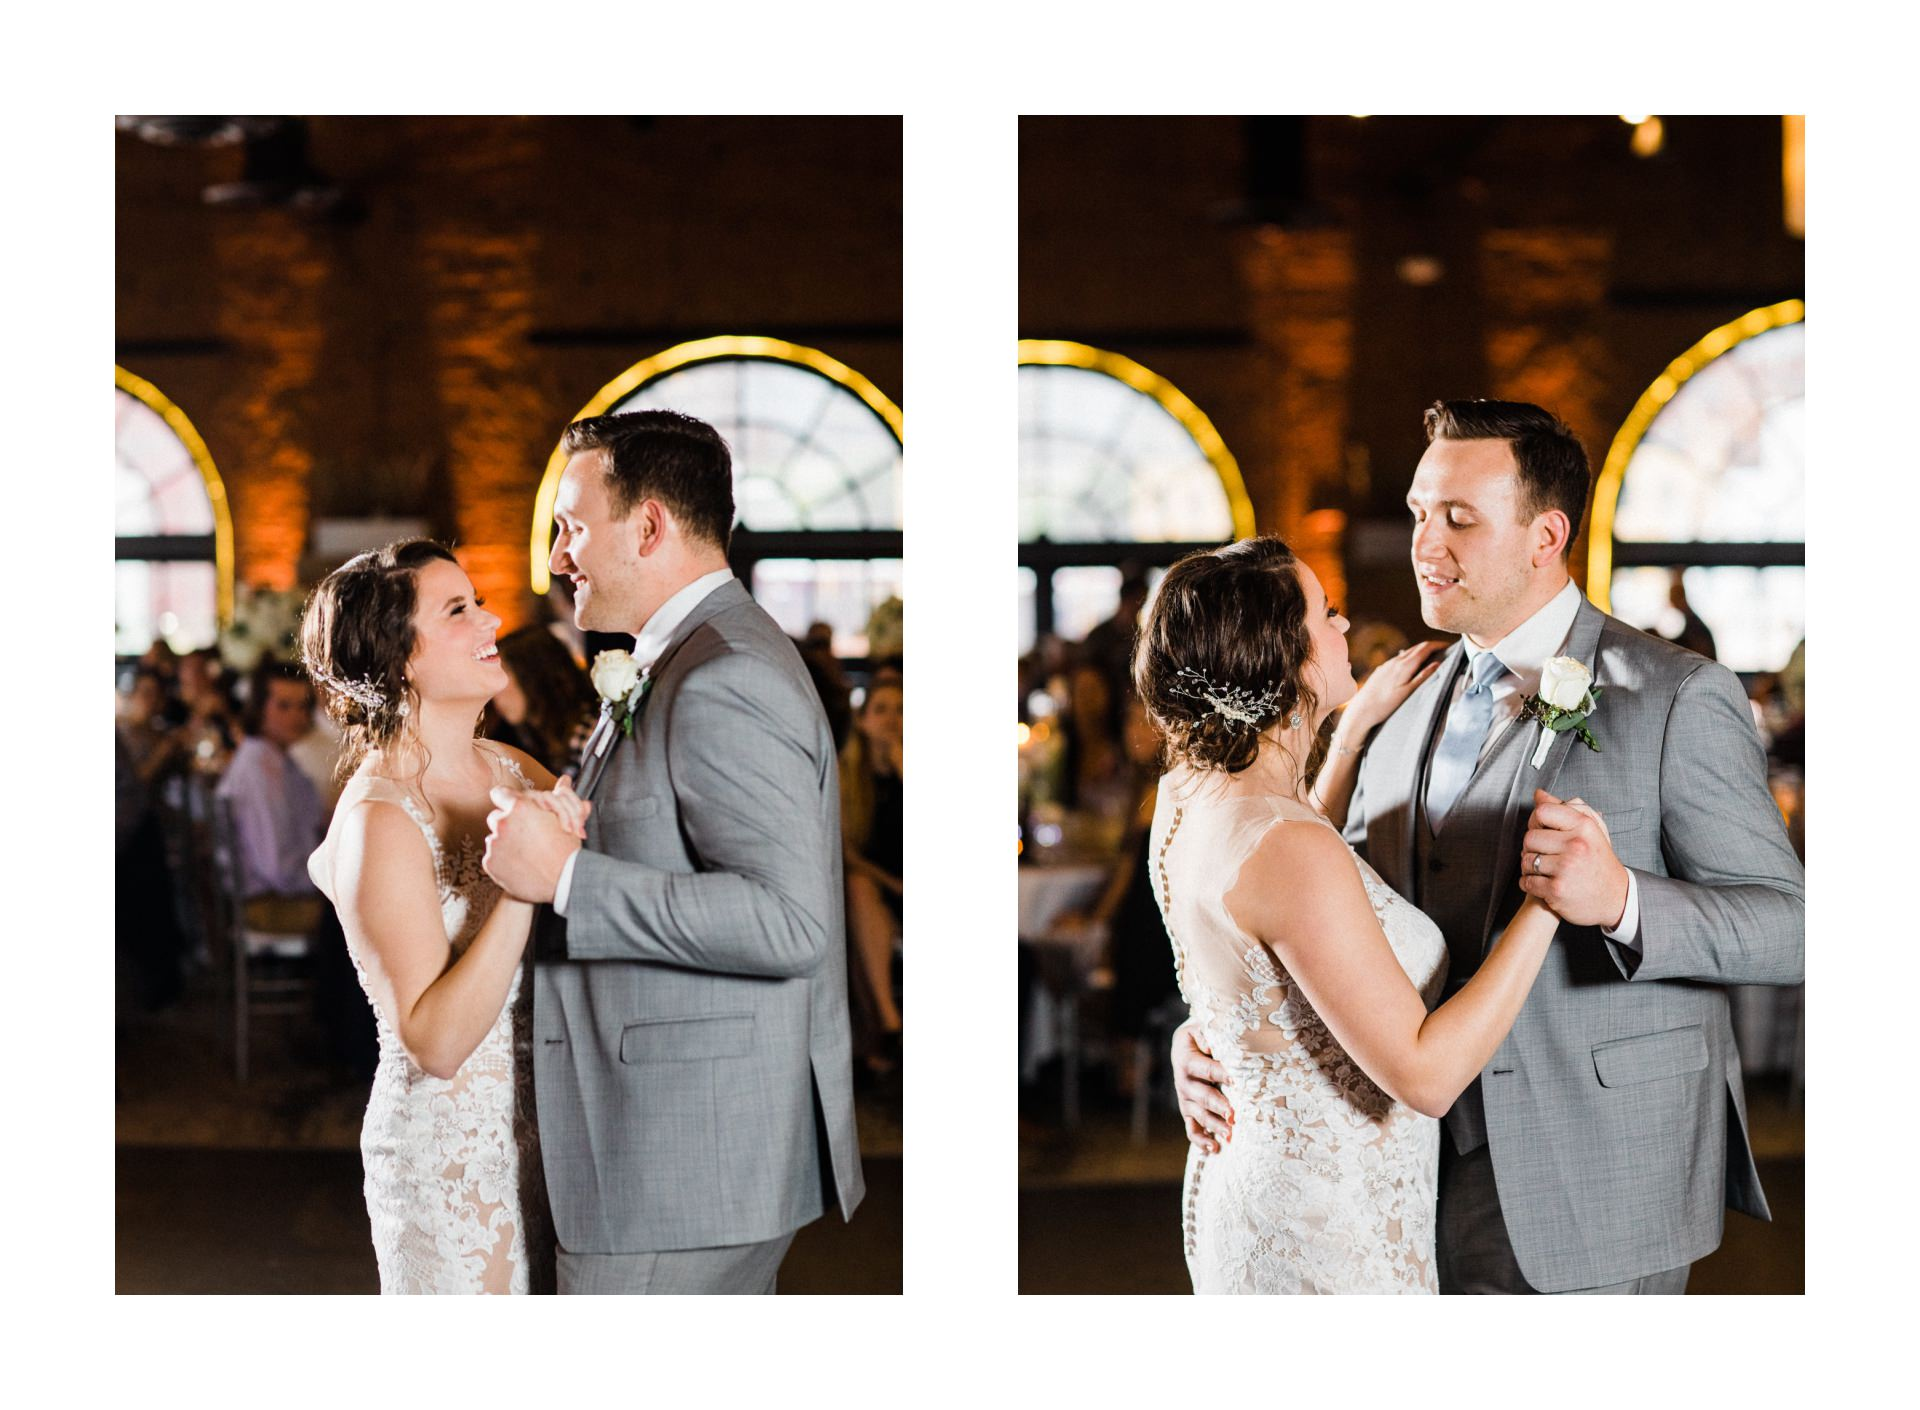 Windows on the River Cleveland Wedding Photographer 2 17.jpg